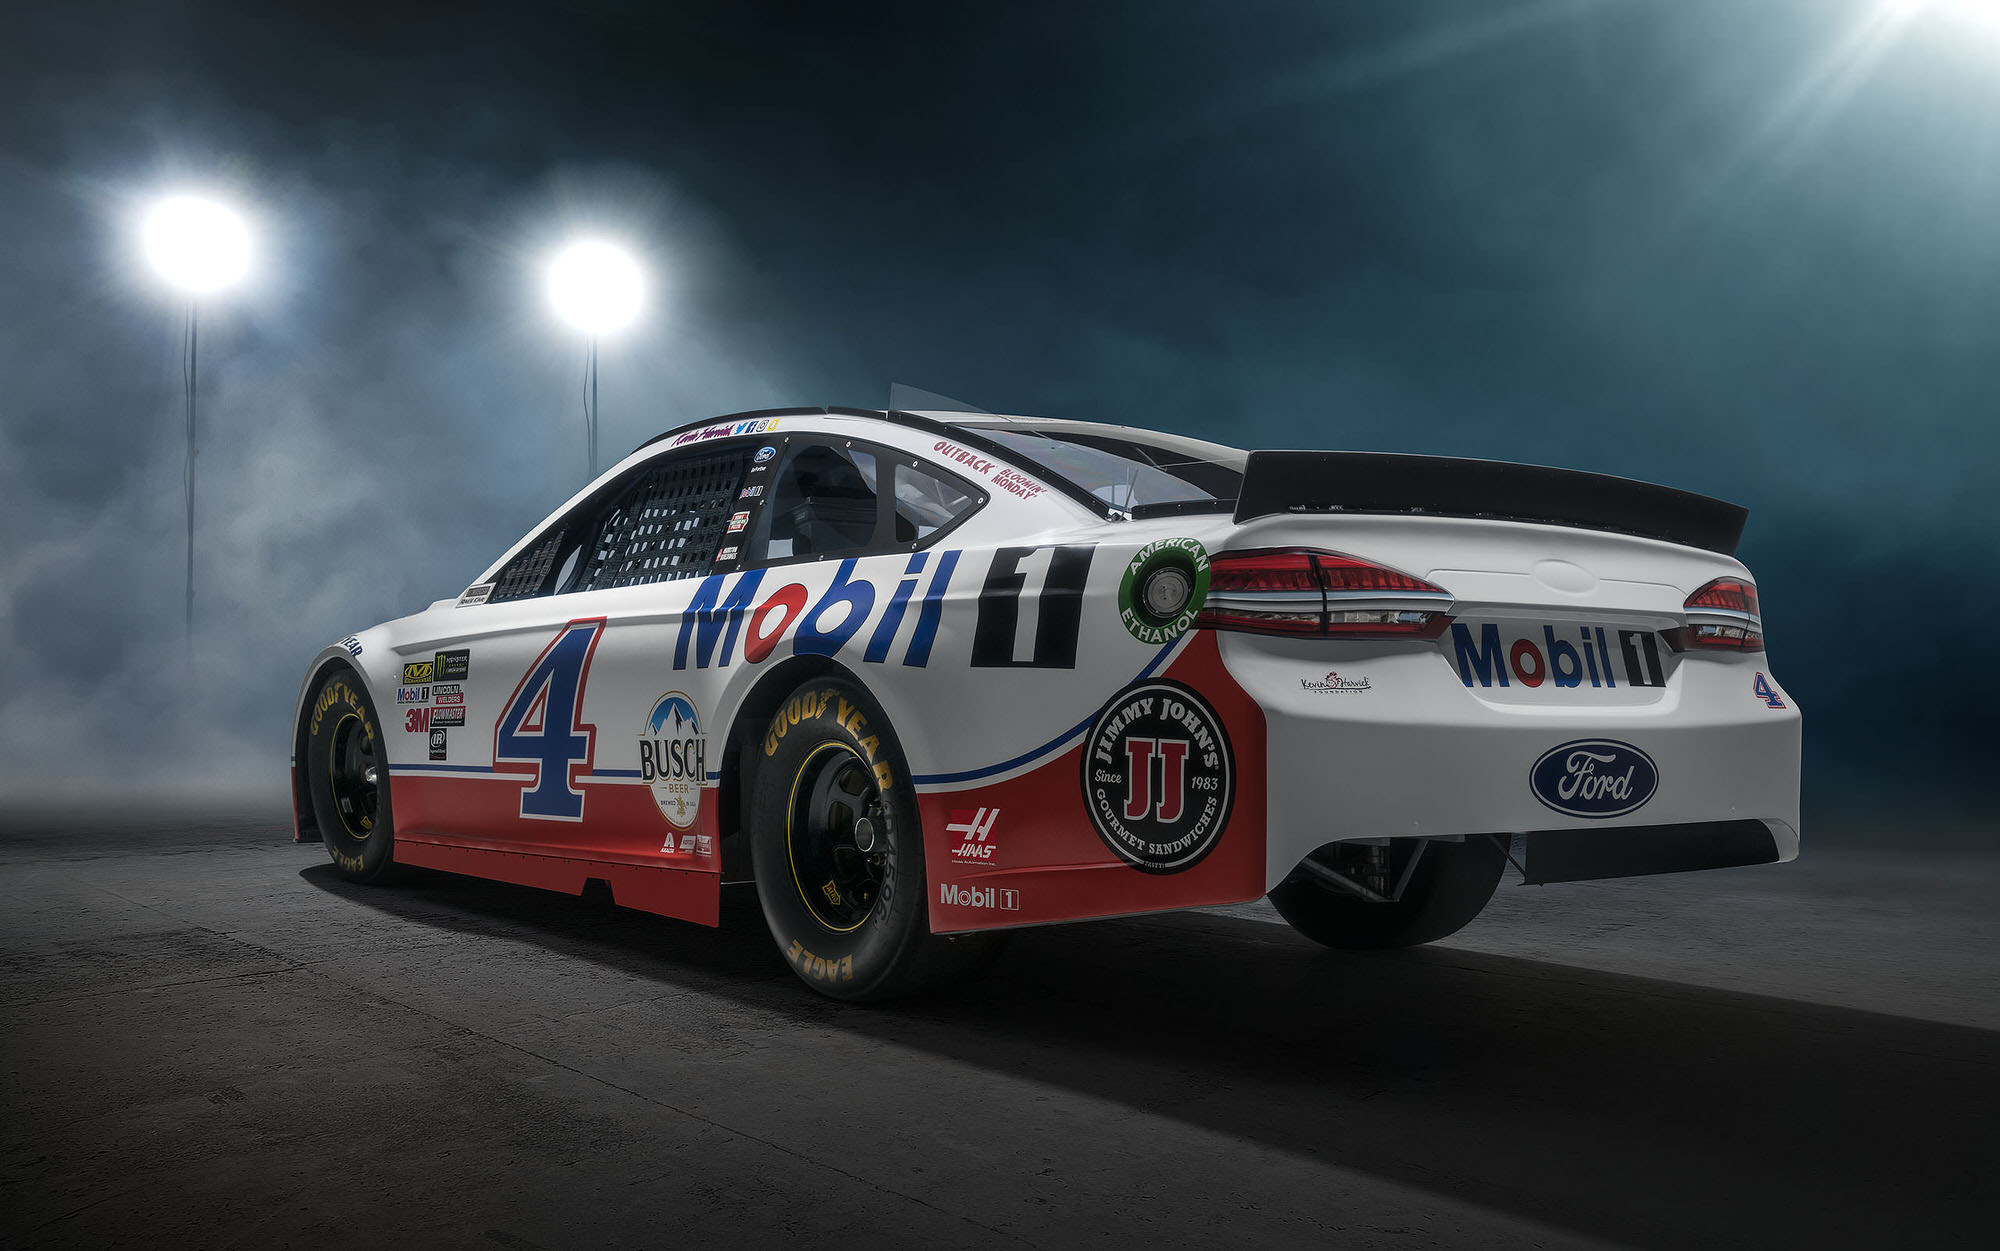 Kevin Harvick Mobil 1 NASCAR commercial photography